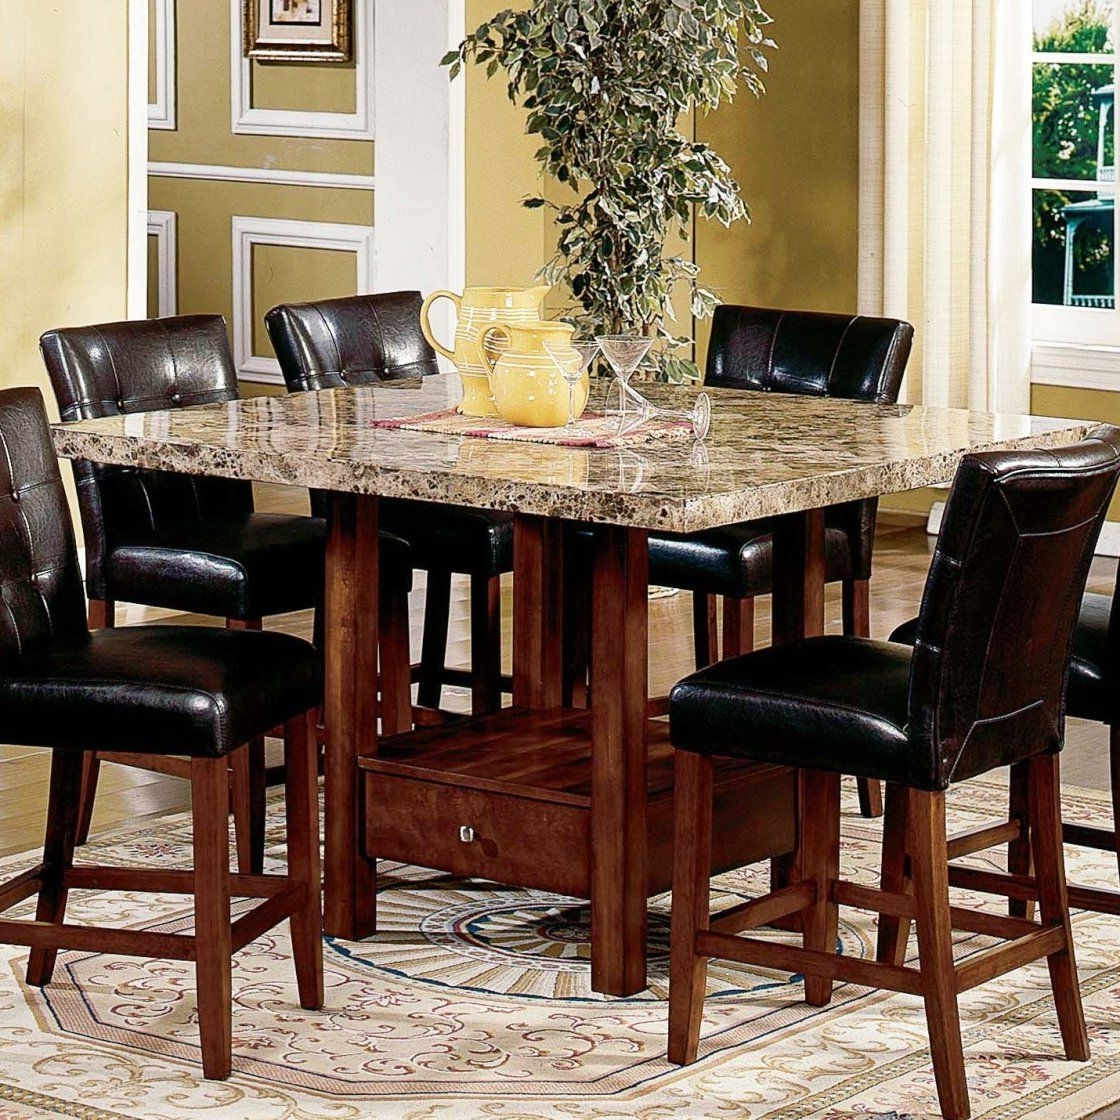 Dining, Table And